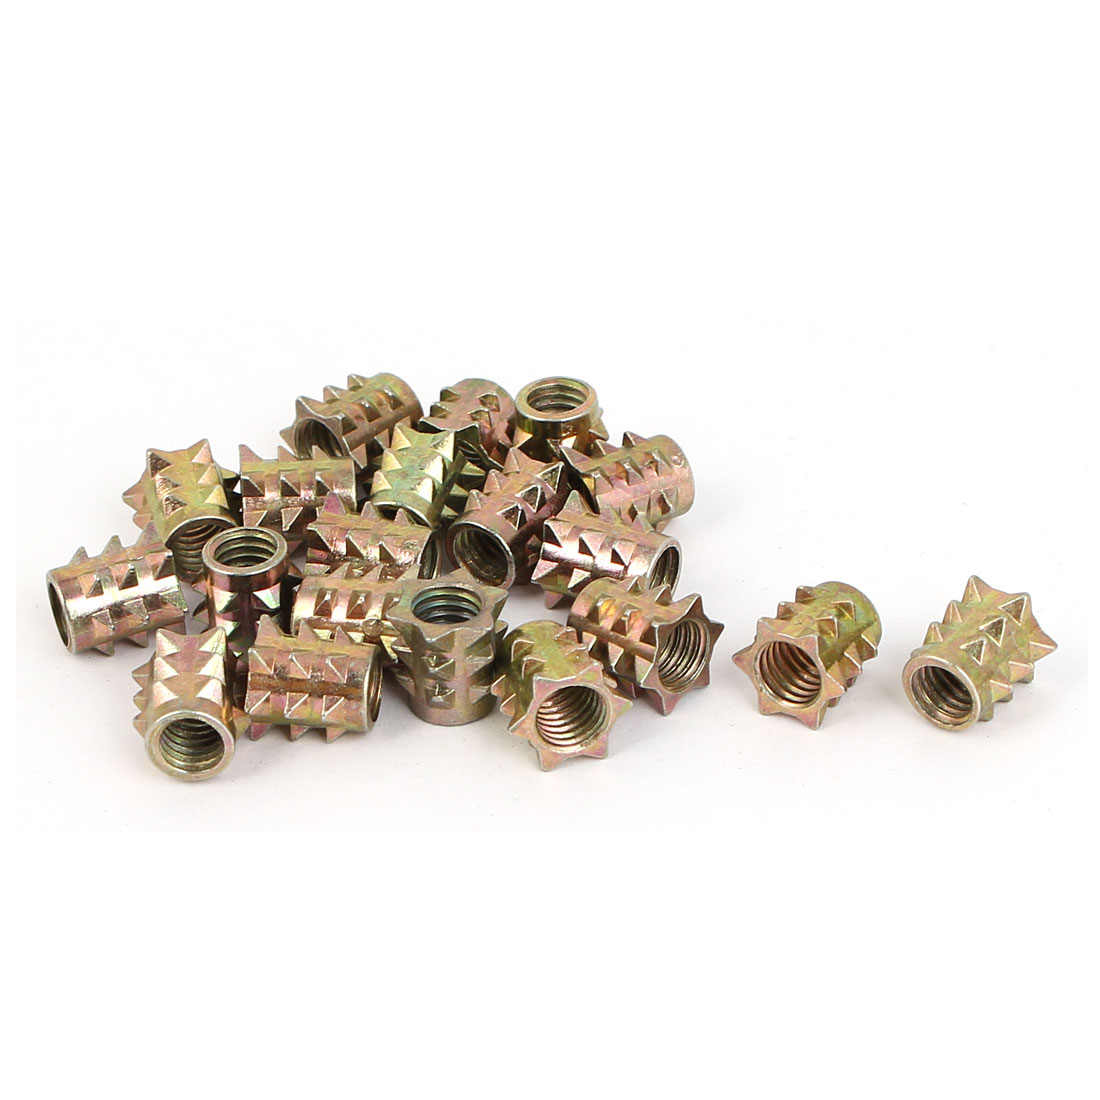 M6 x 10mm Female Threaded Barbed Body Insert Nuts Bronze Tone 20 Pcs